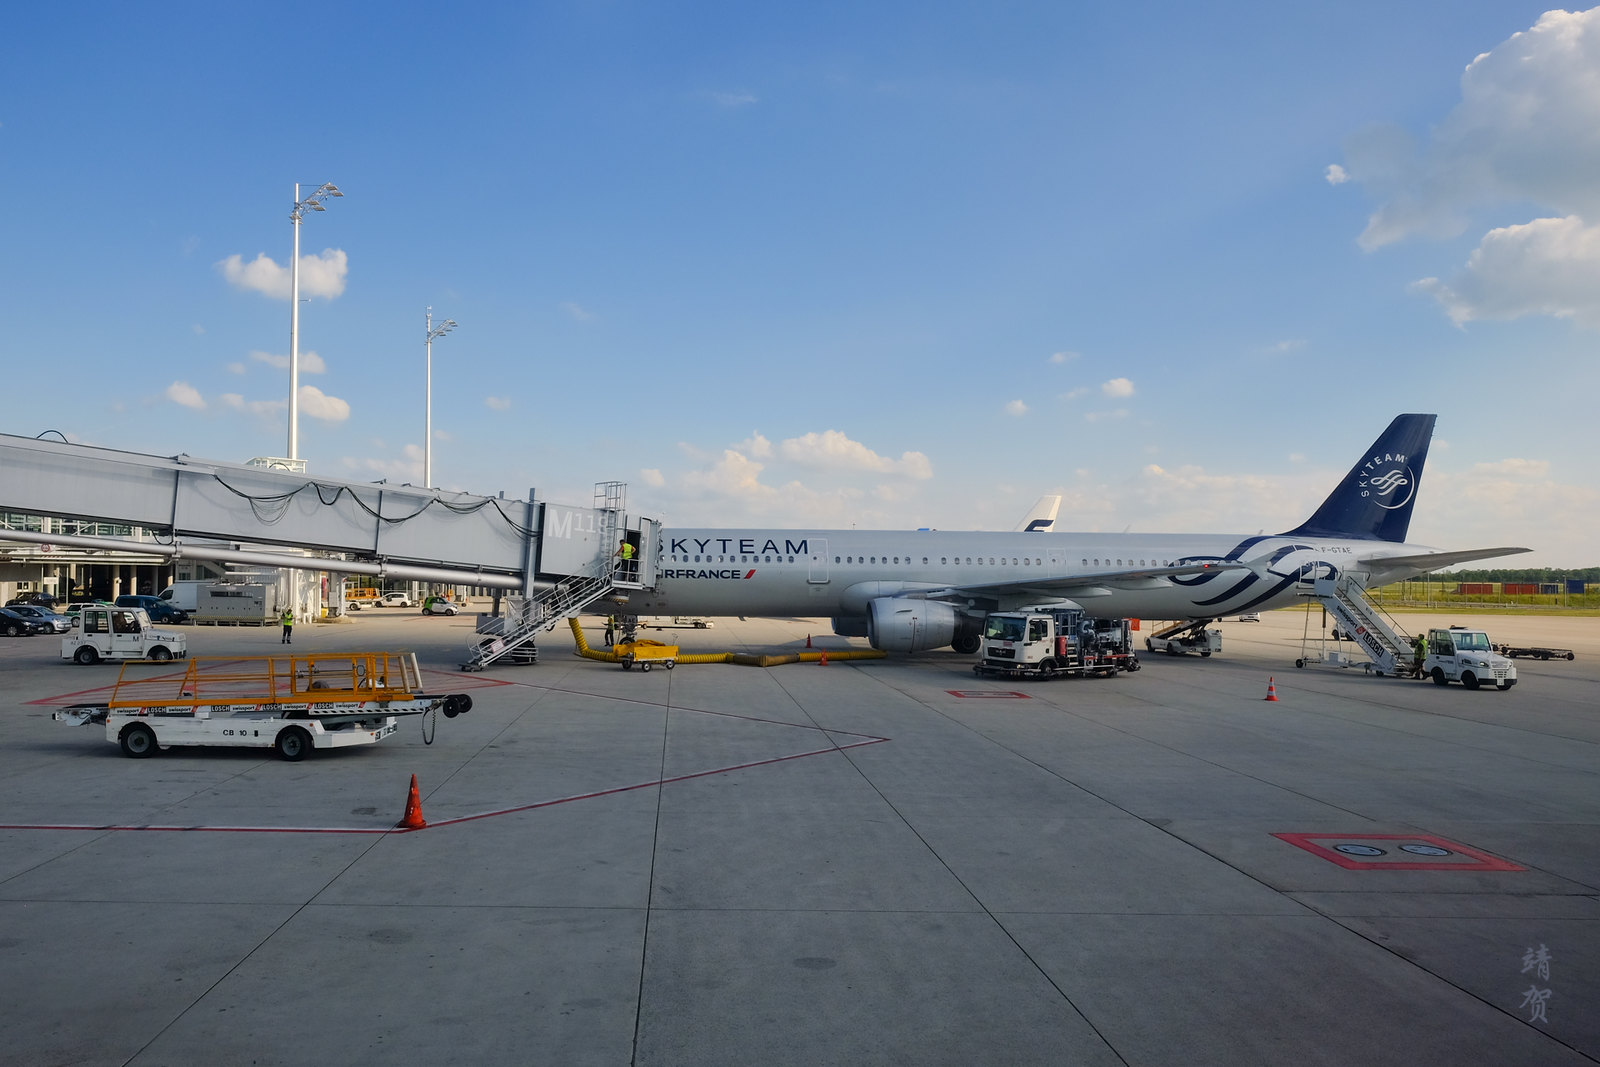 Air France Airbus A320 in Skyteam livery